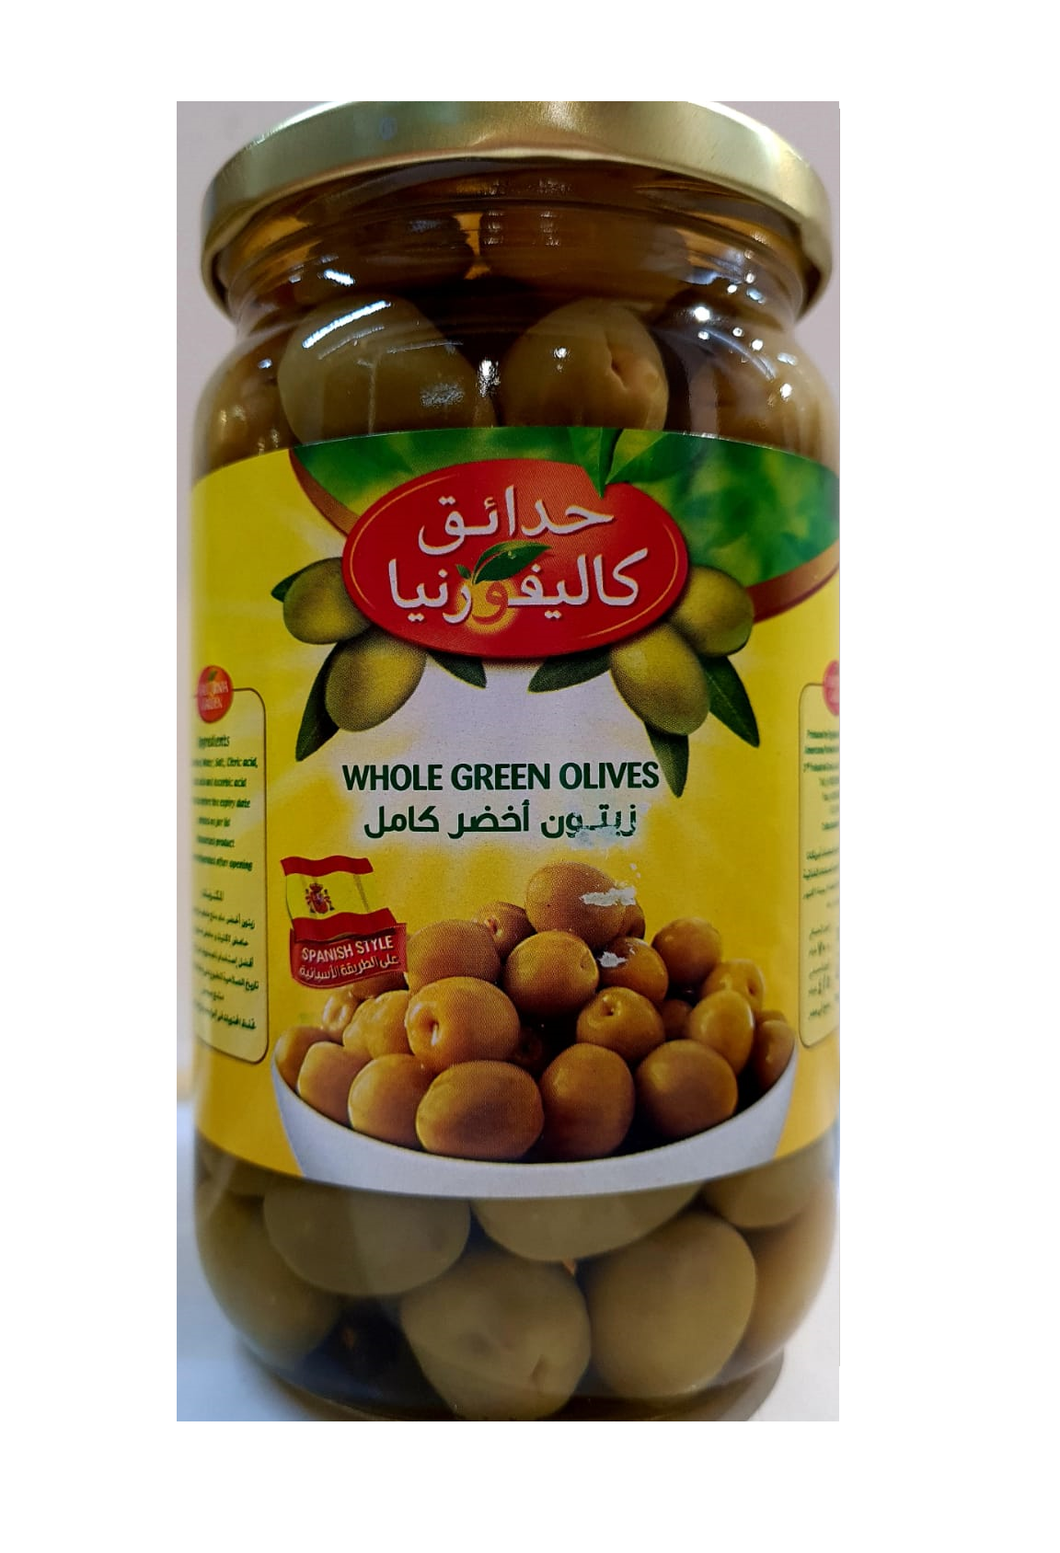 CG WHOLE GREEN OLIVES 425G